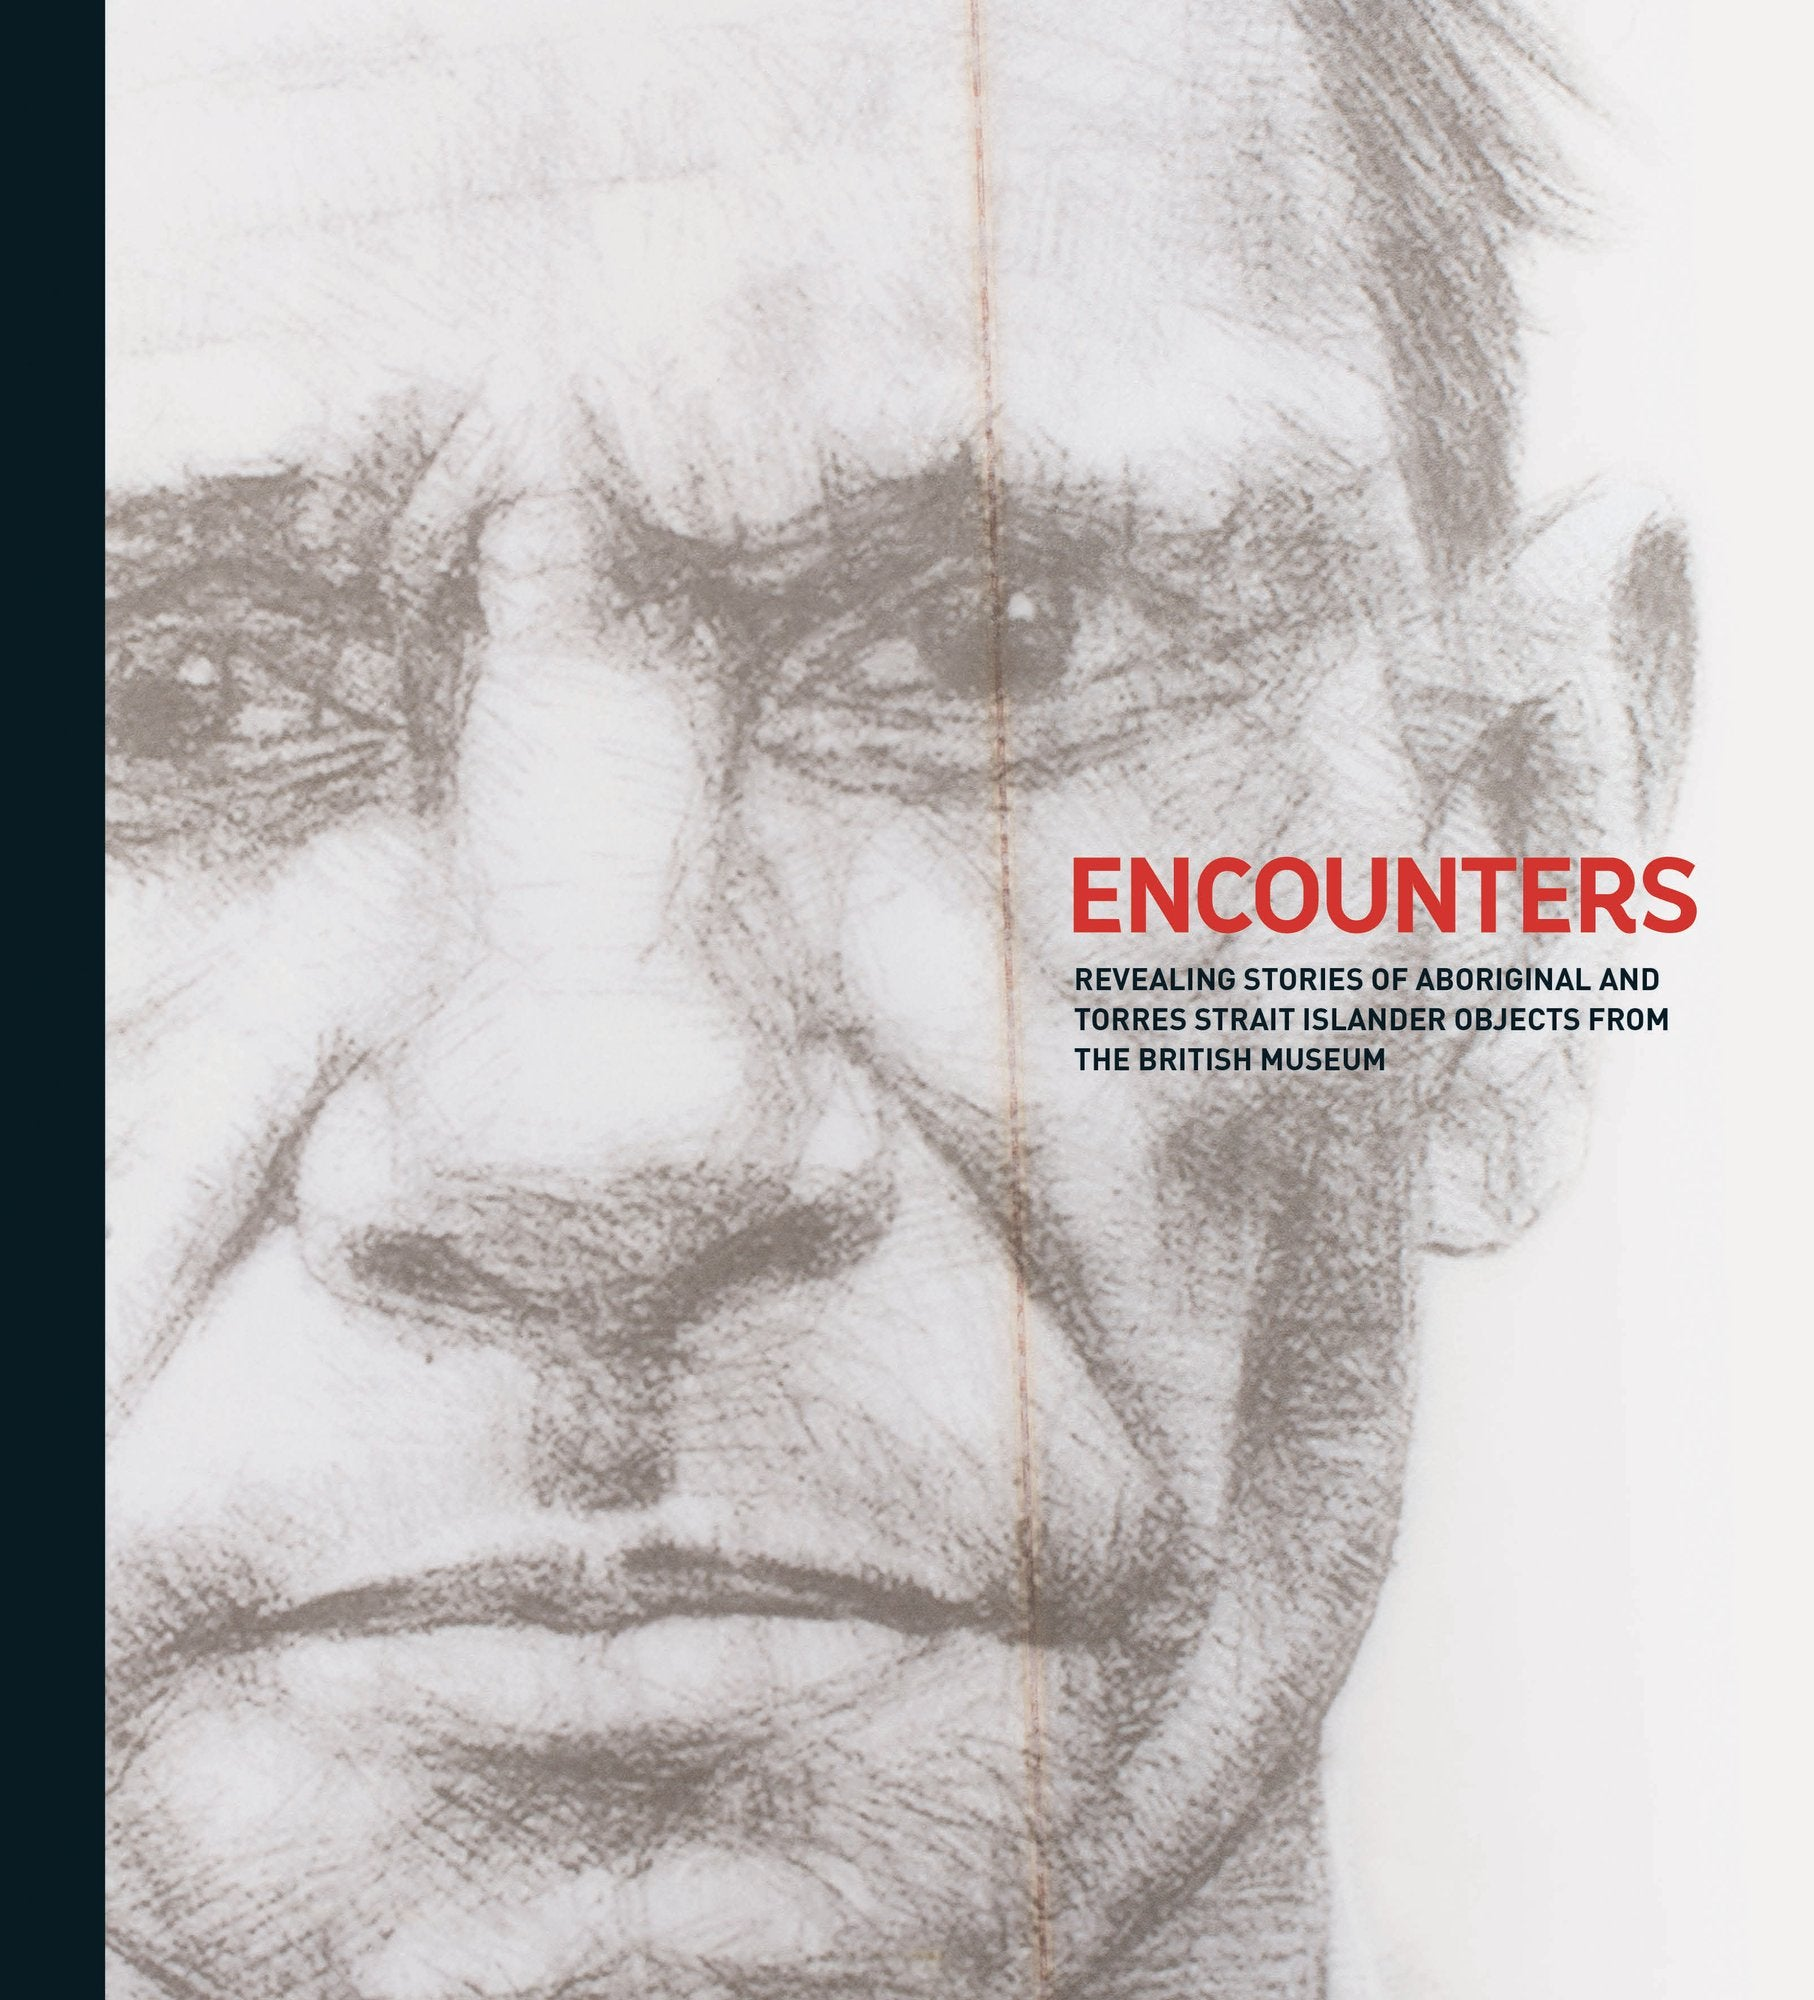 Encounters: Revealing Stories of Aboriginal and Torres Strait Islander Objects from the British Museum